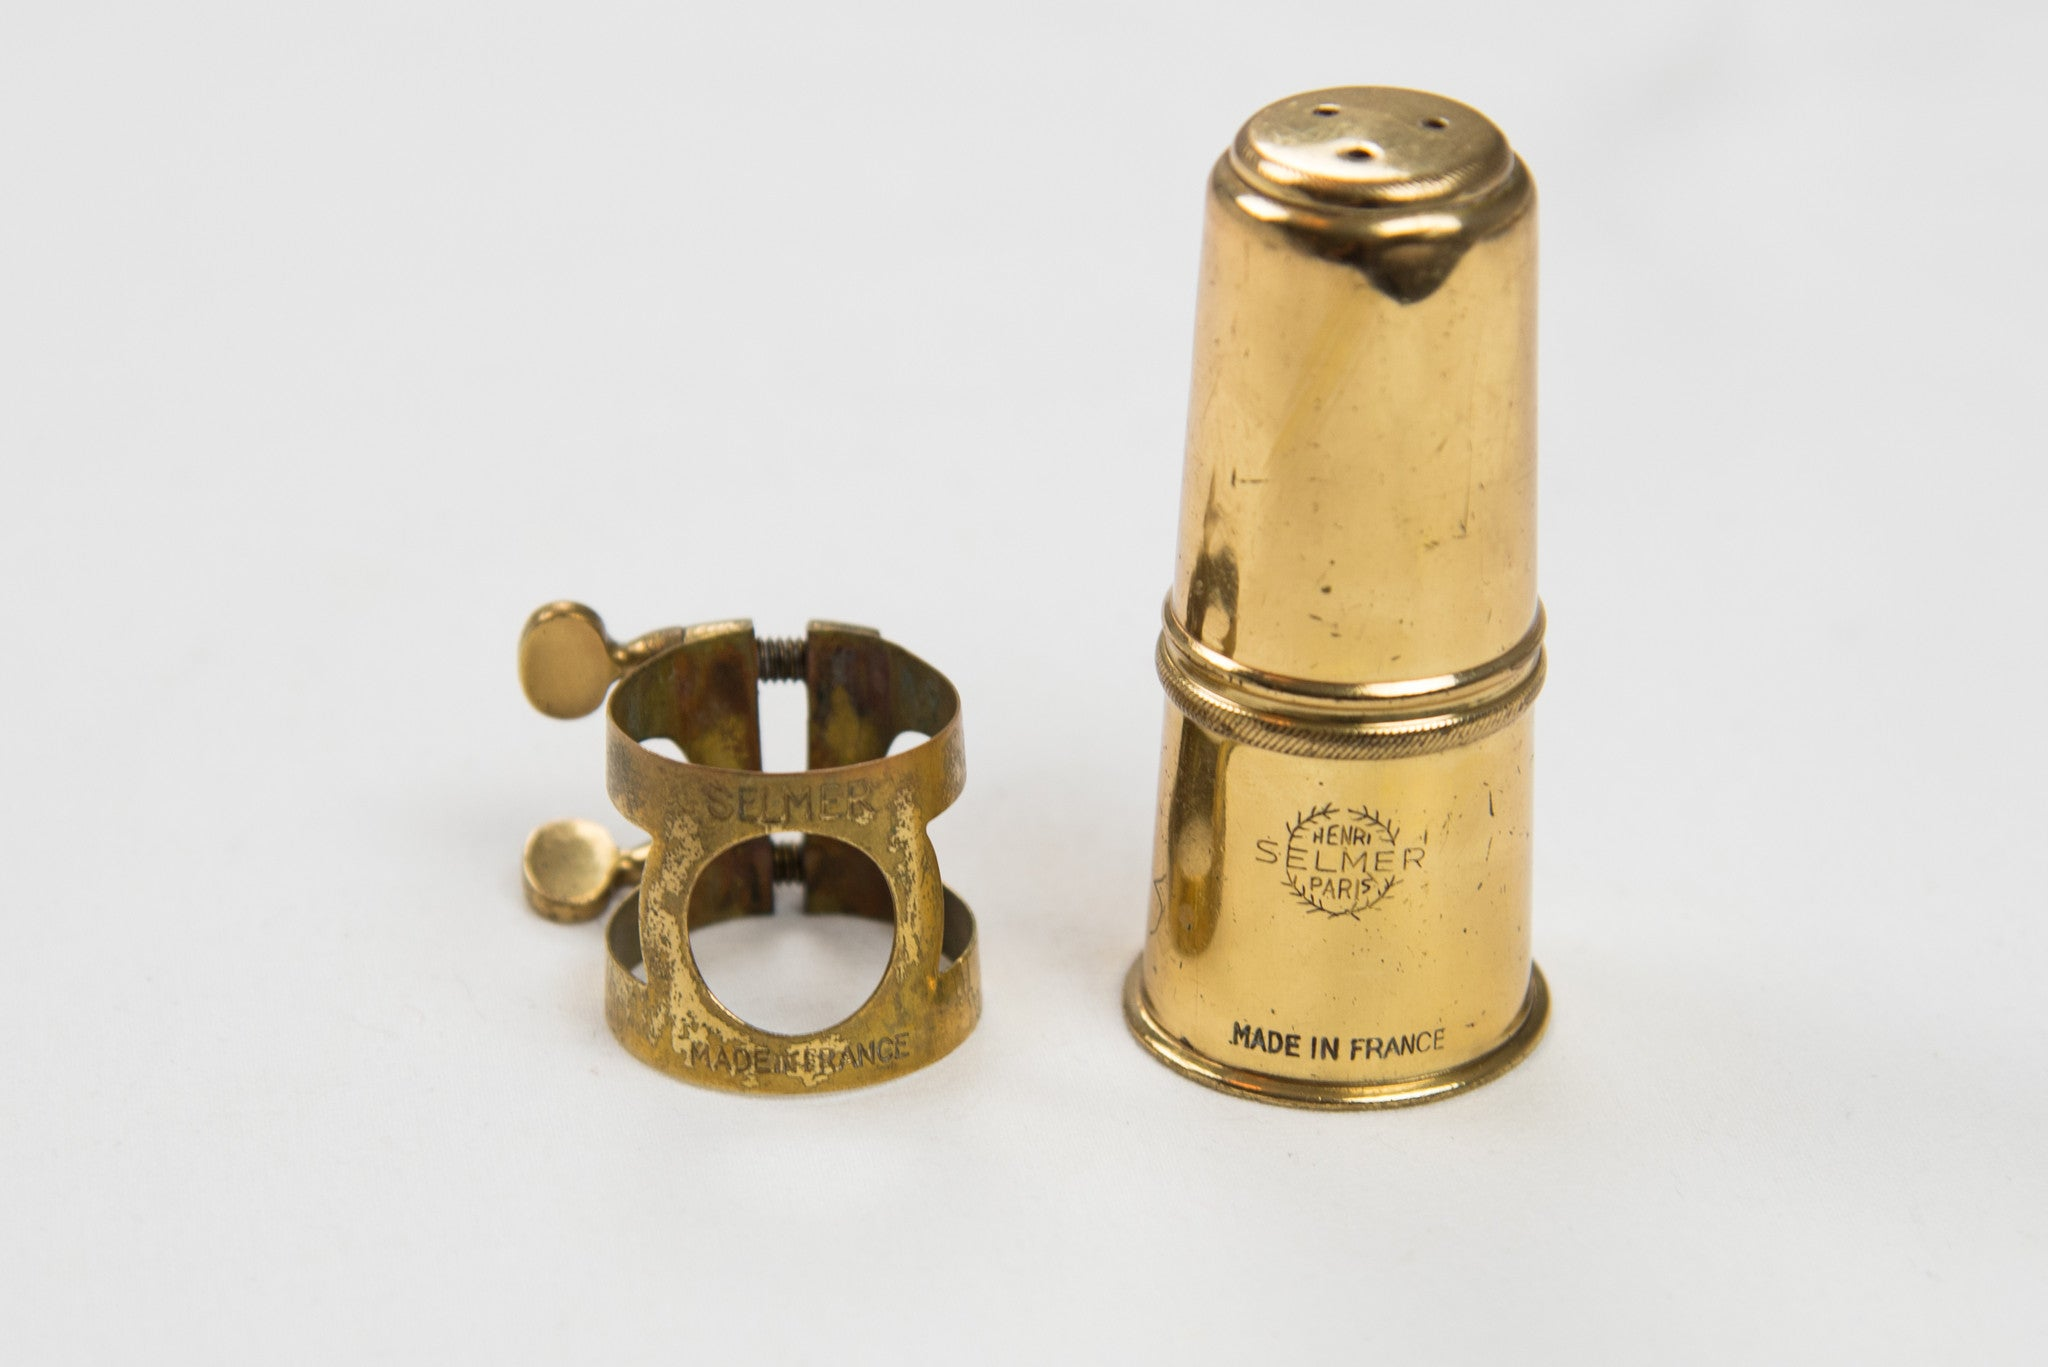 Vintage 1960's Selmer Mark VI Alto Saxophone Ligature and Cap